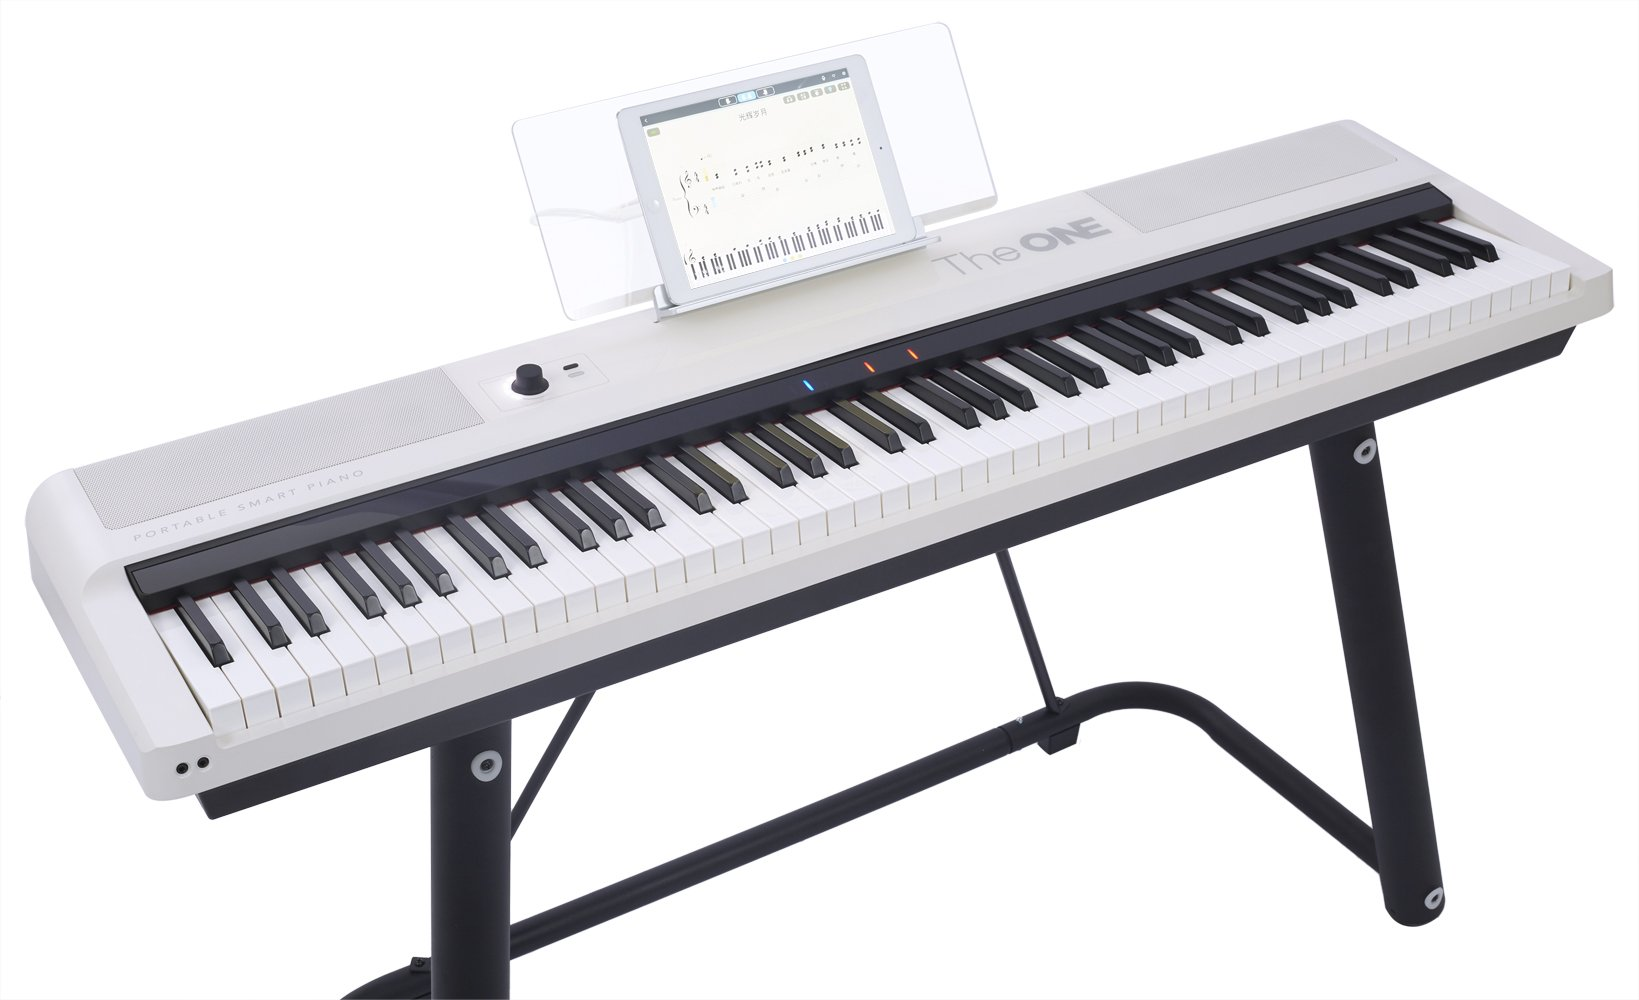 The ONE Music Group 88-Key Portable Piano Electronic MIDI Keyboard Weighted Action Digital Piano, Grace White by The ONE Music Group (Image #6)